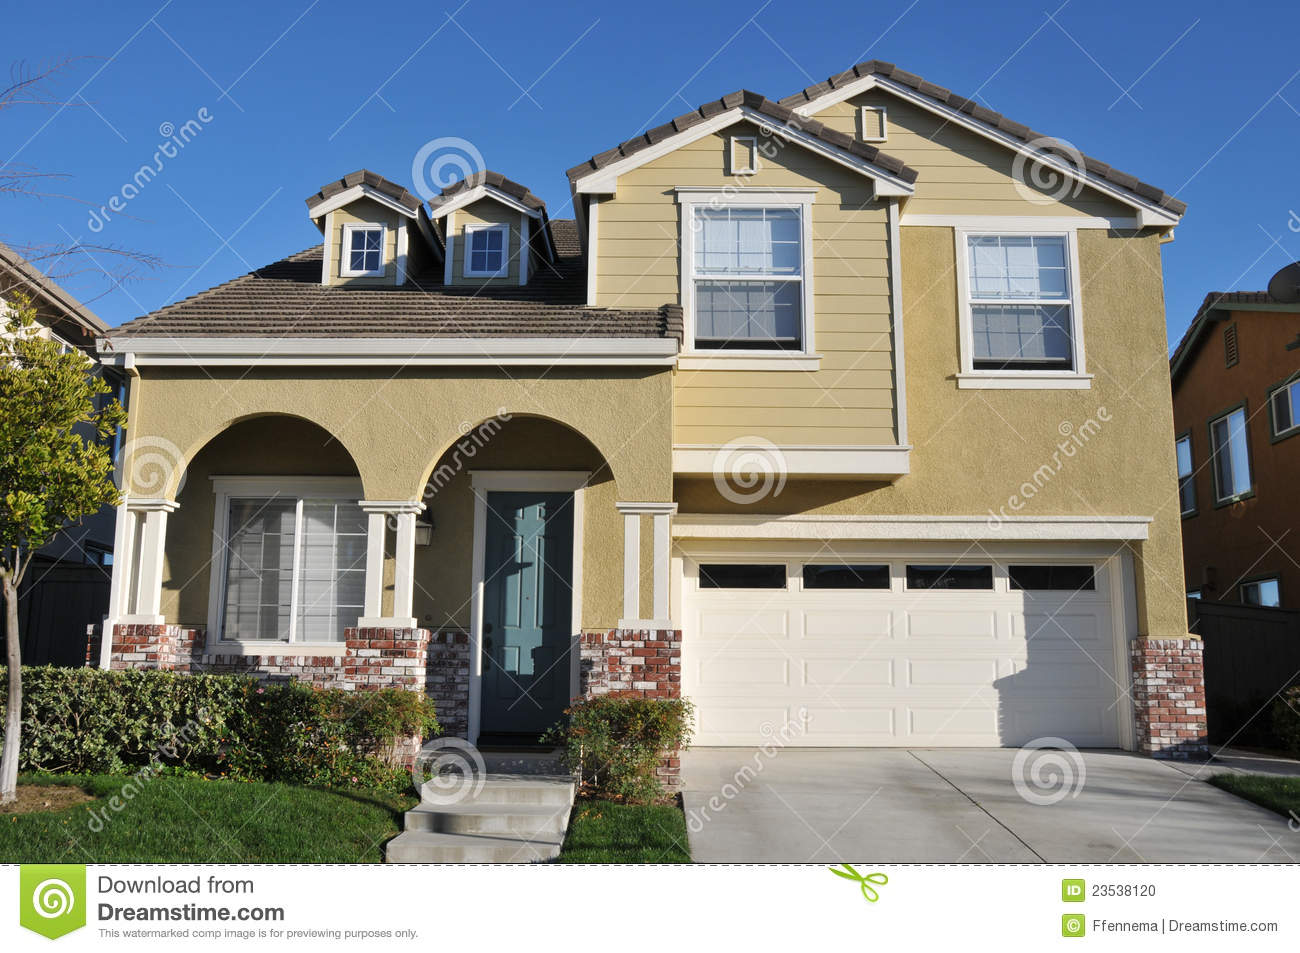 Two Story Single Family House With Driveway Stock Photo Image 23538120